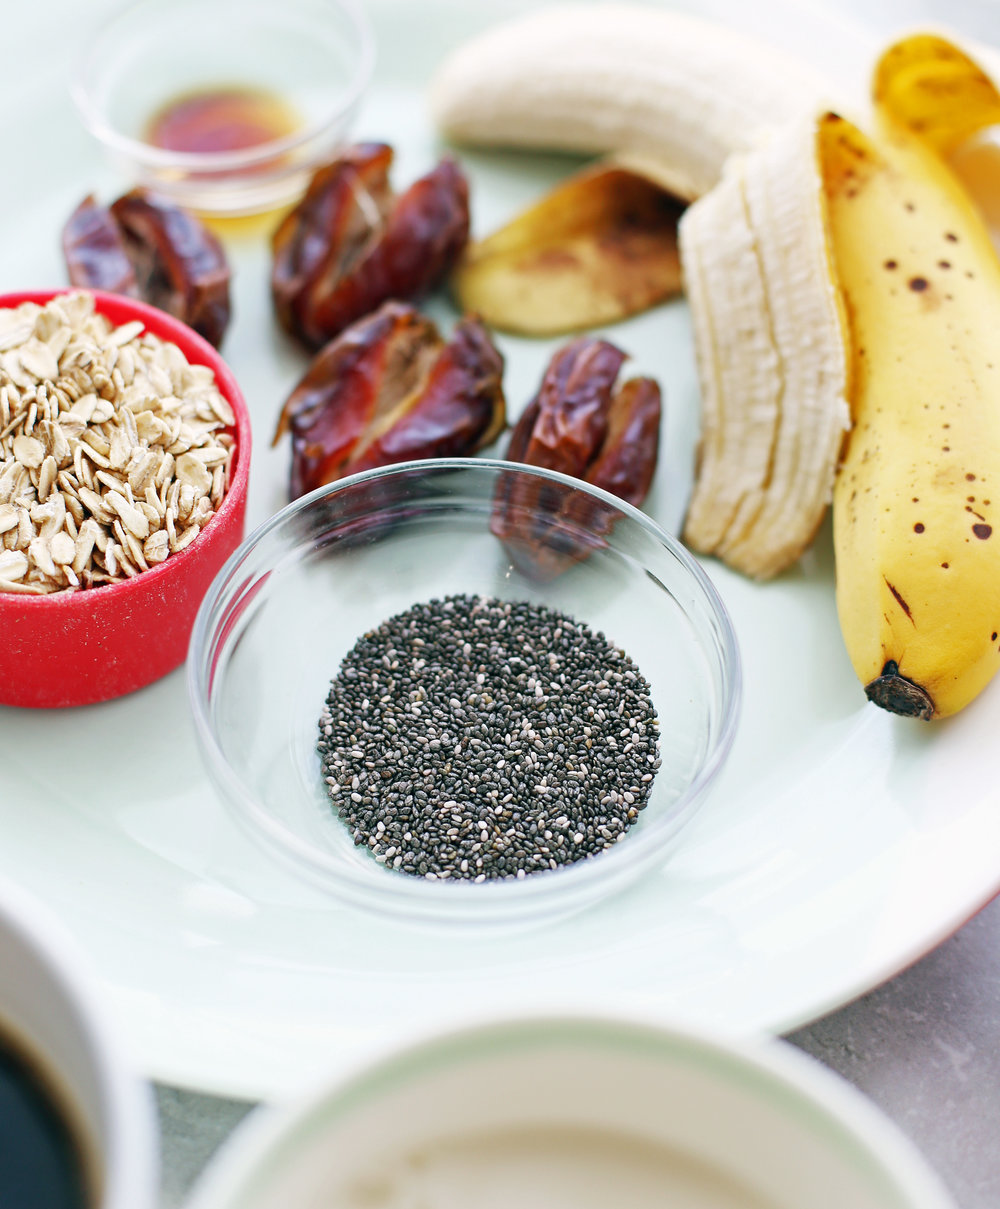 A closeup of a small bowl containing chia seeds; dates, banana, rolled oats, and vanilla extract in the background.